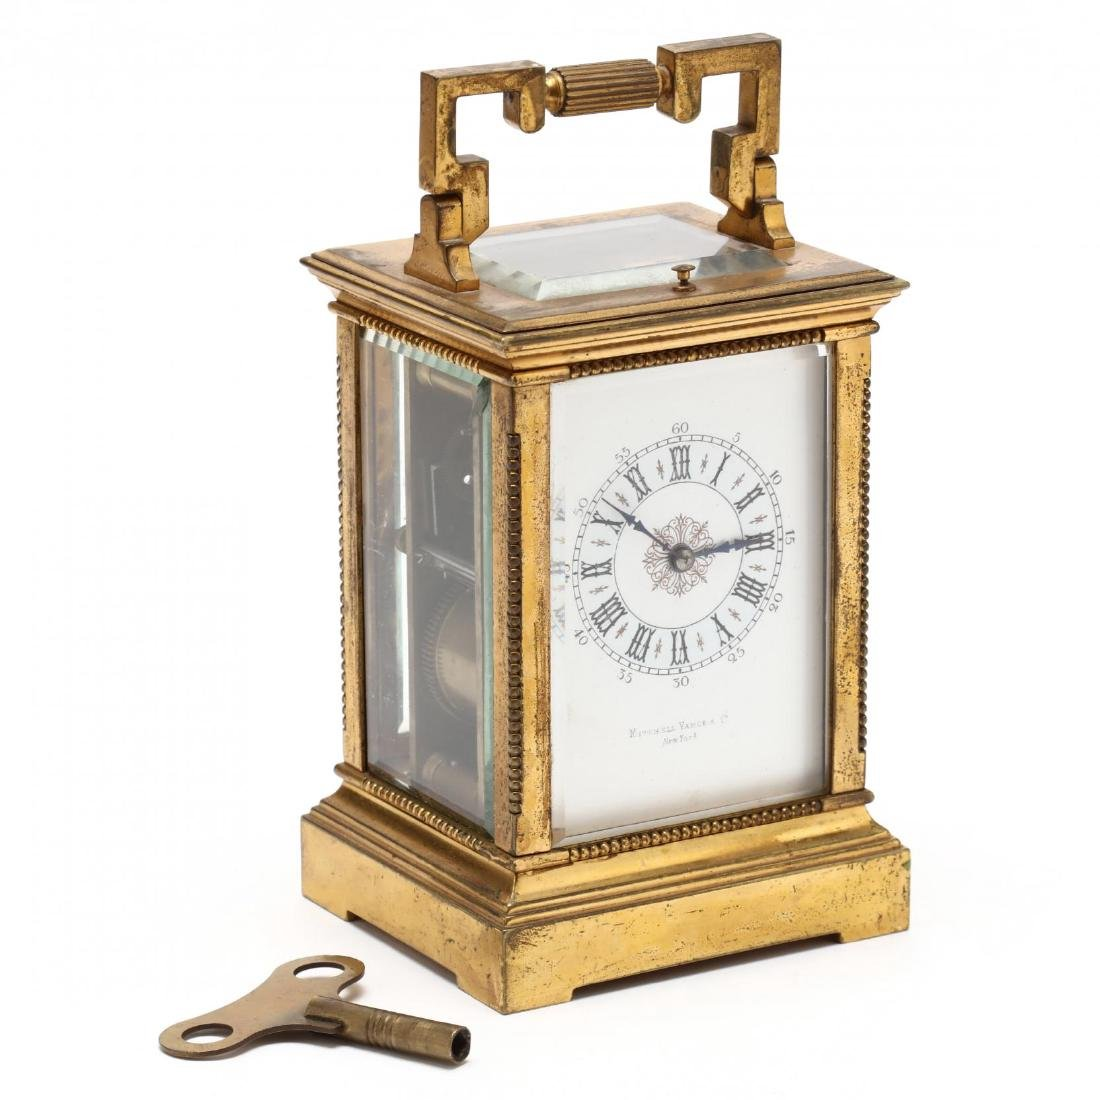 Mitchell Vance & Co., Gilt Bronze Carriage Clock